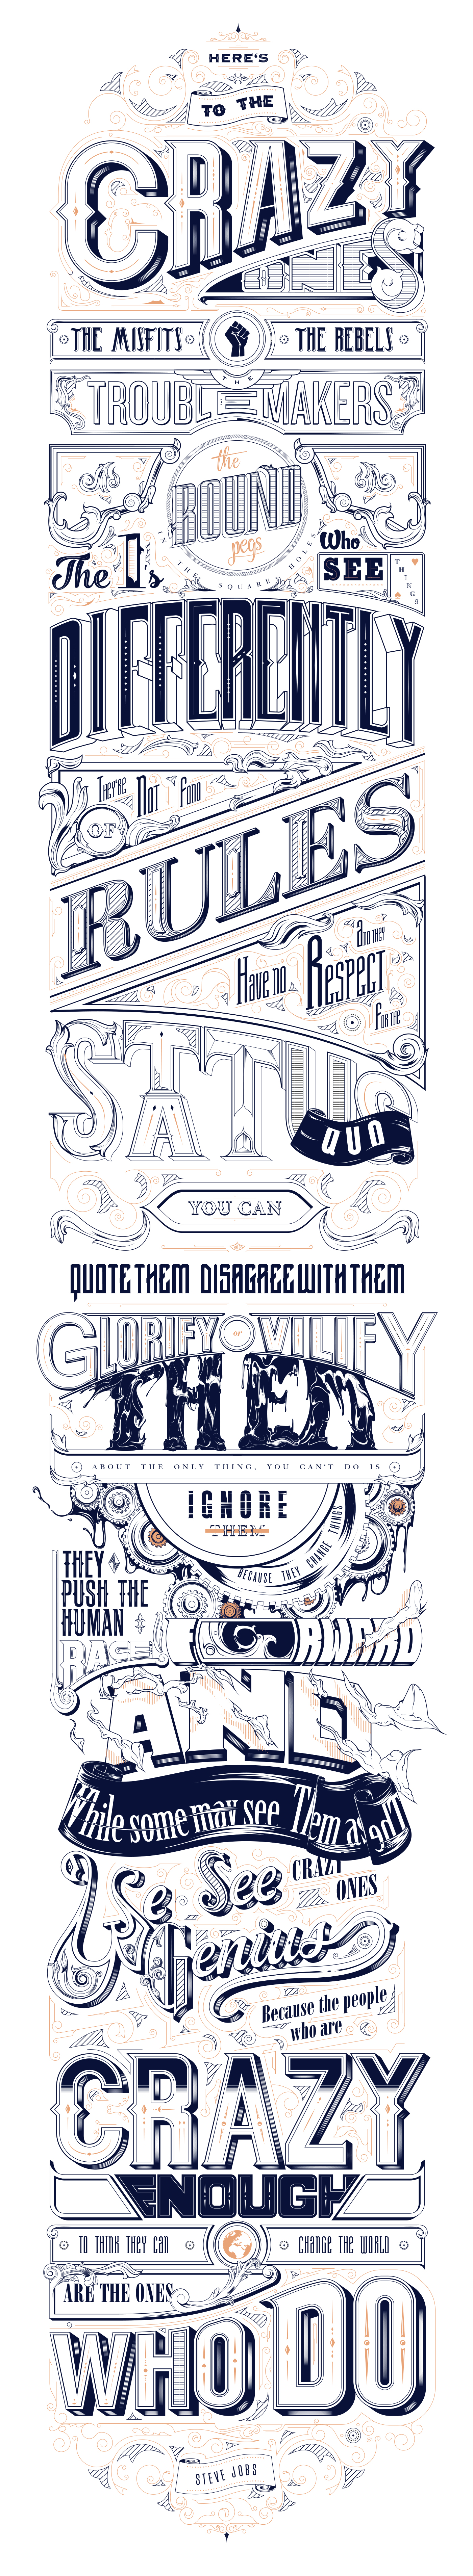 Steve Jobs Famous Quote Typography by Tropfich